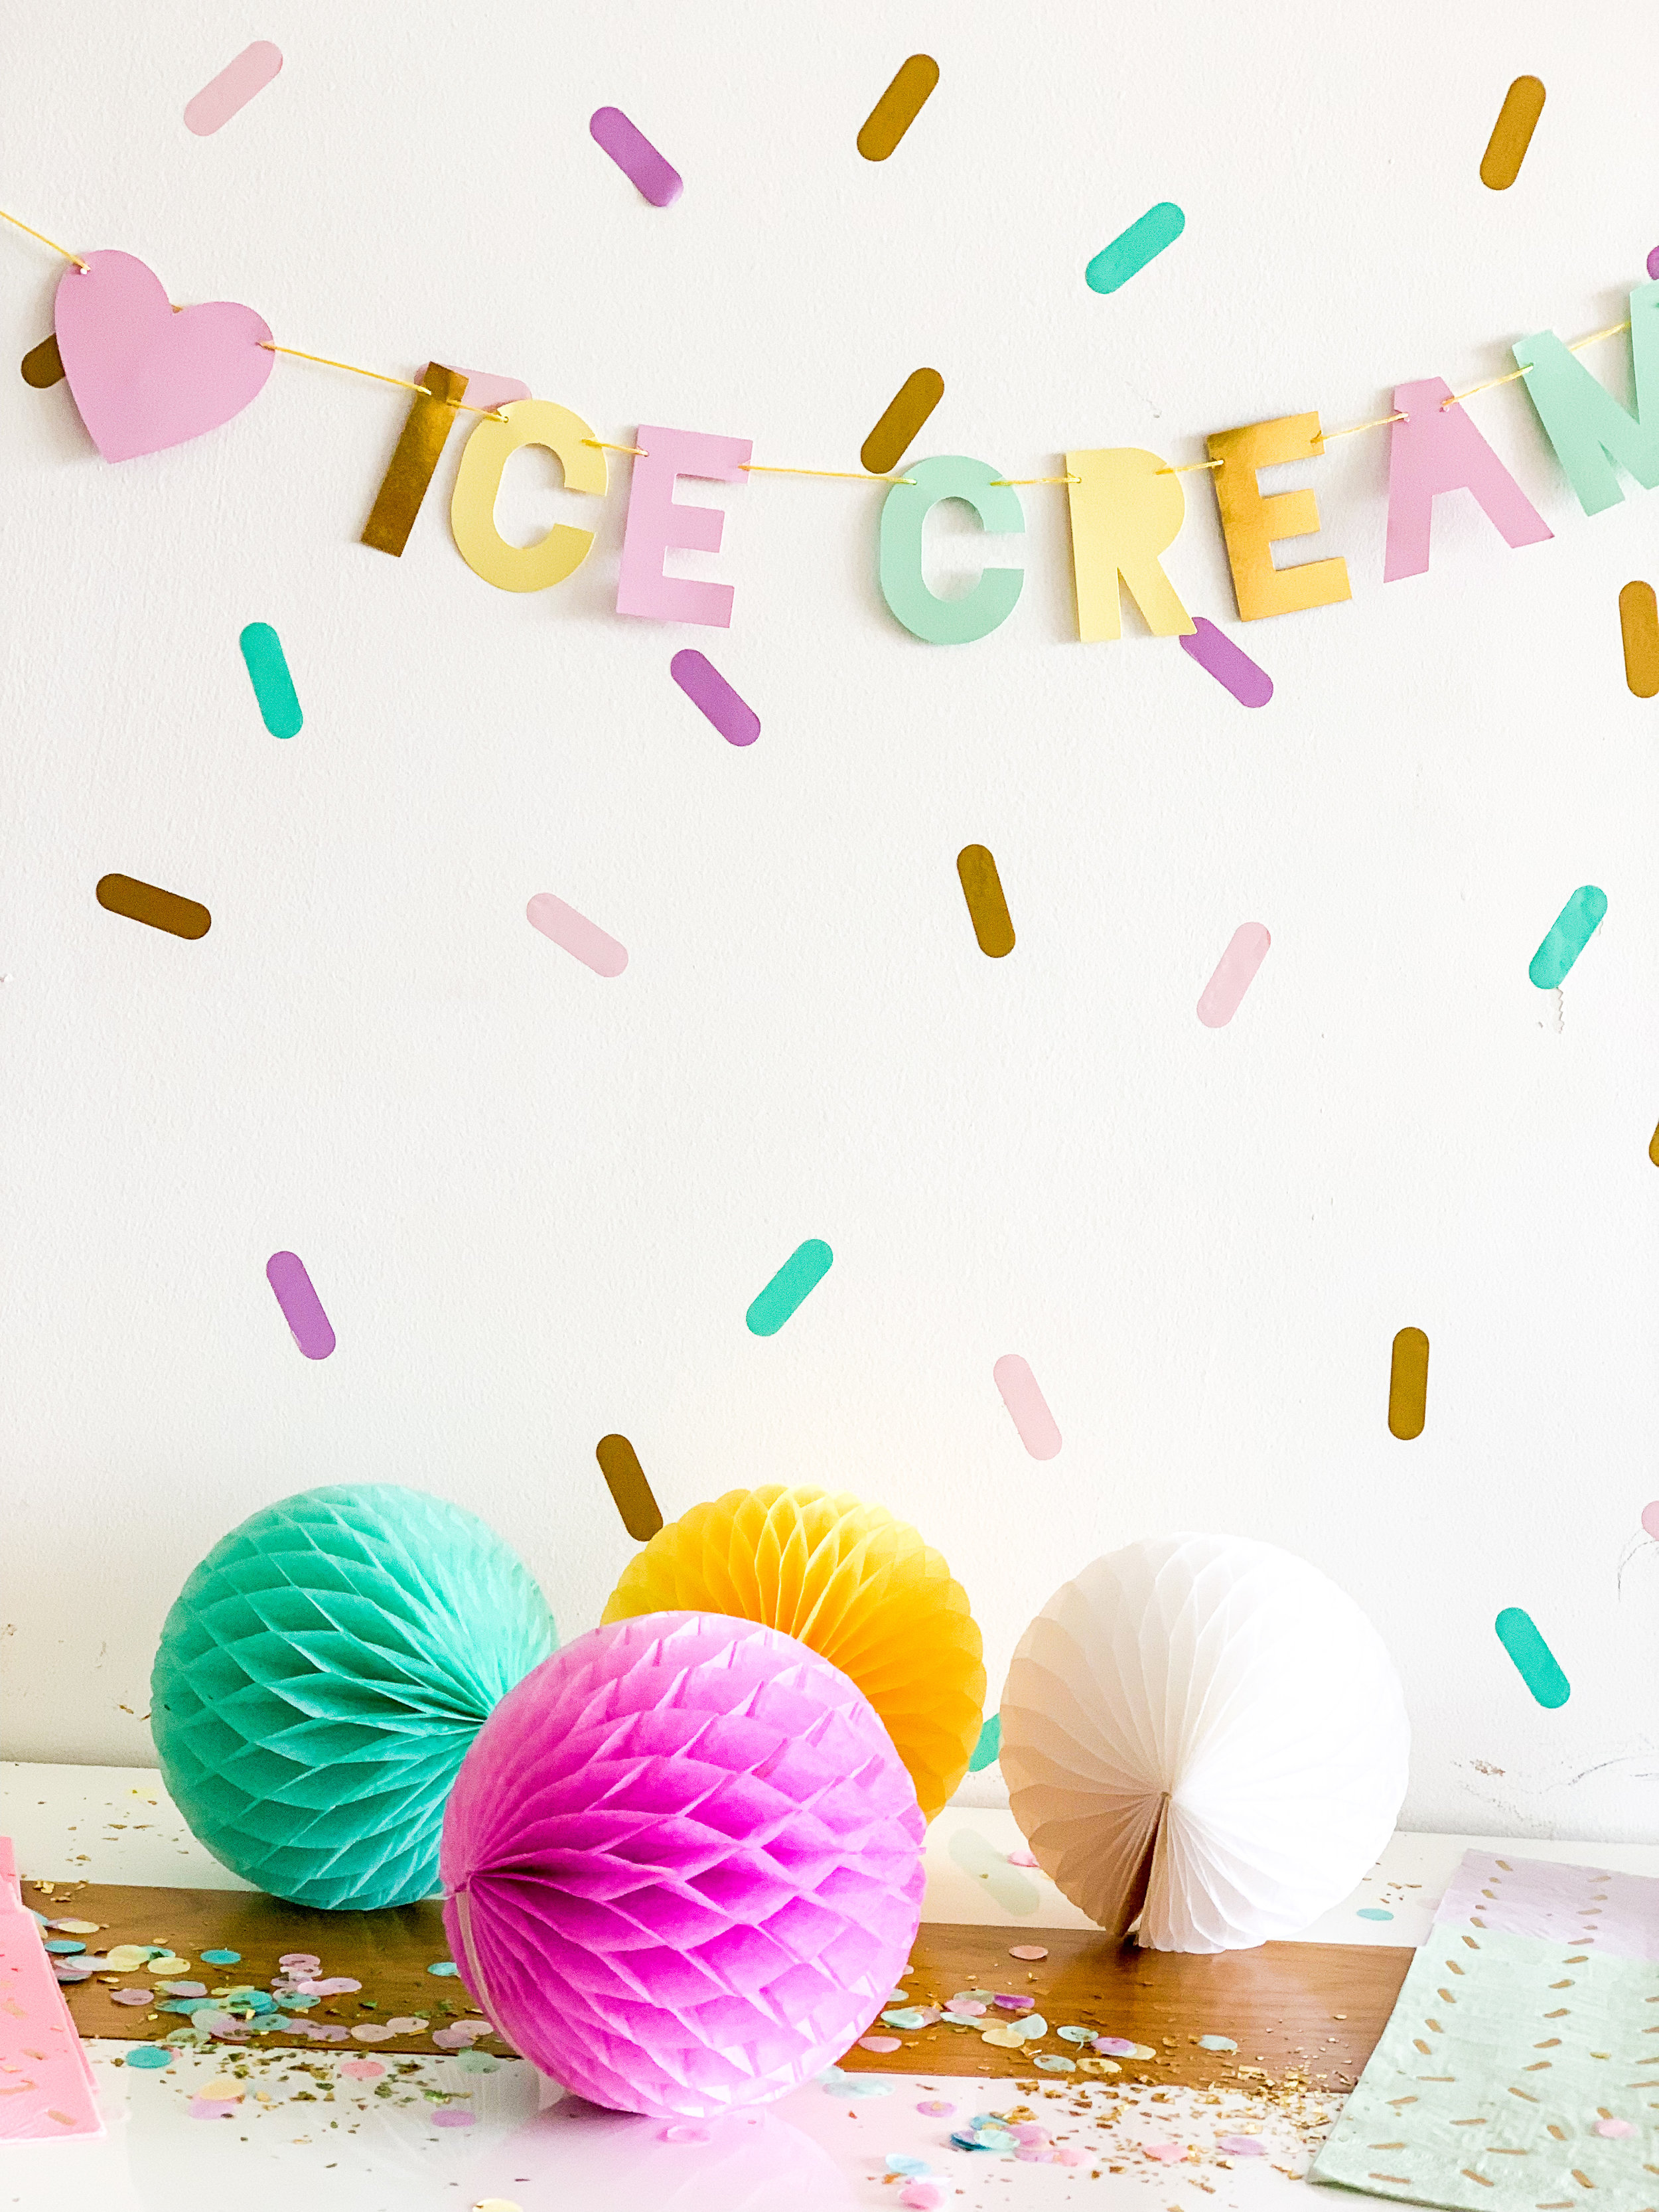 Ice cream party 9.jpg